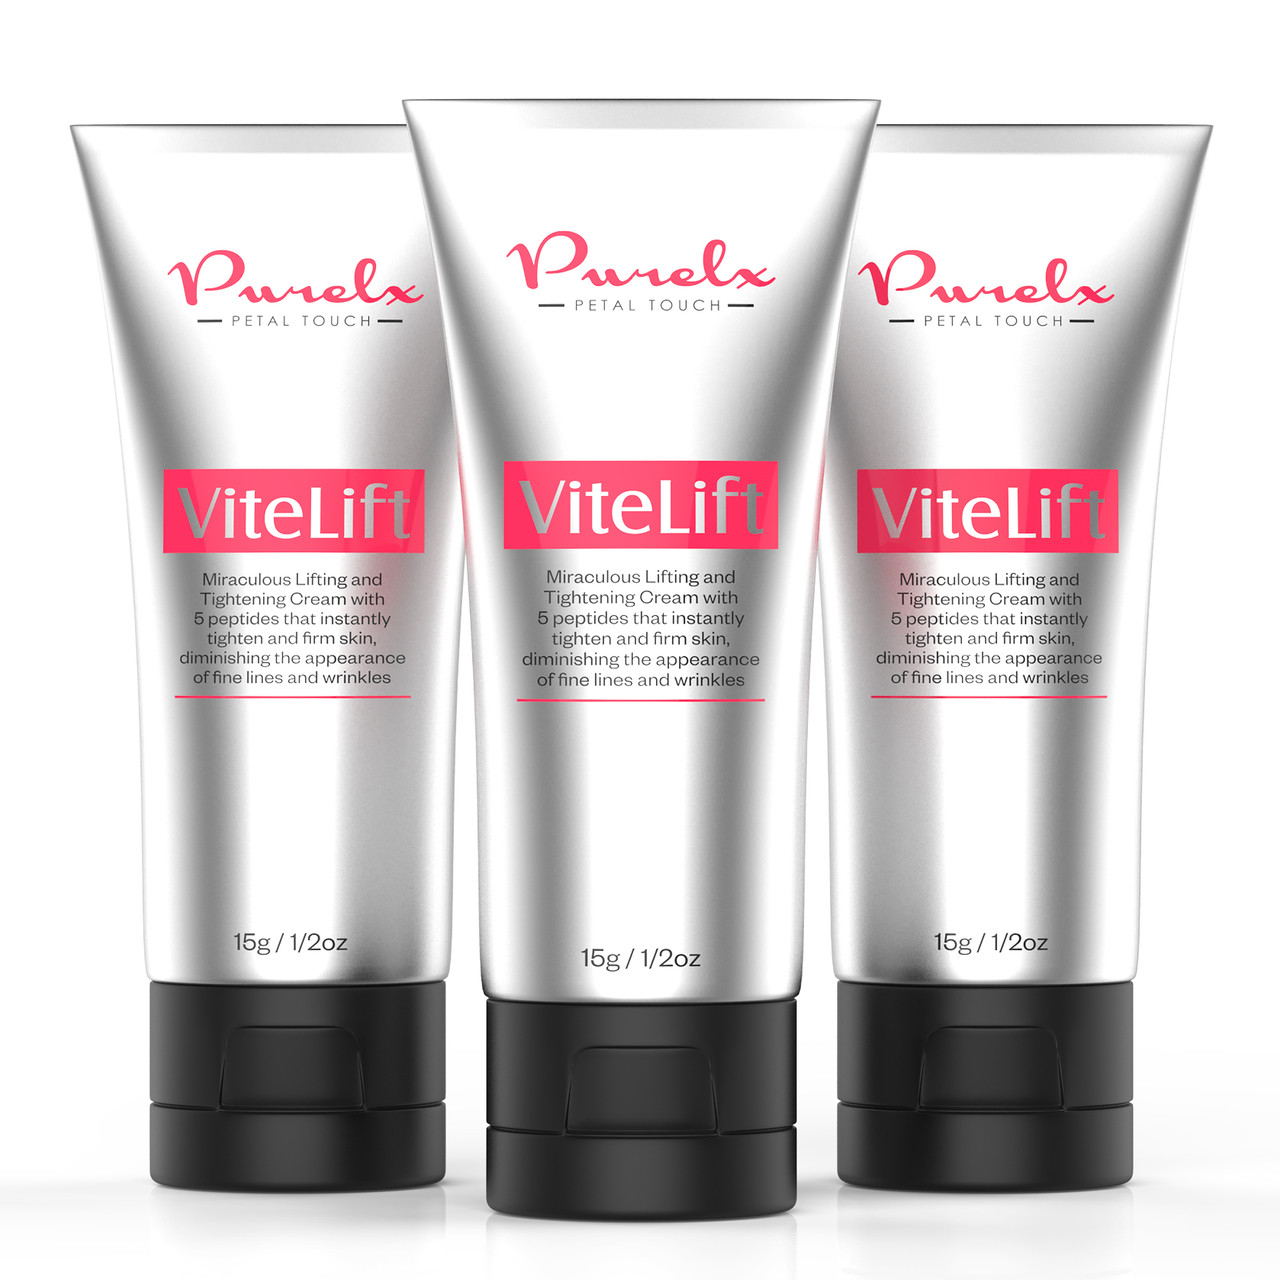 ViteLift Serum Instantly Tightens and Lifts Skin For a Visible Temporary Face lift.